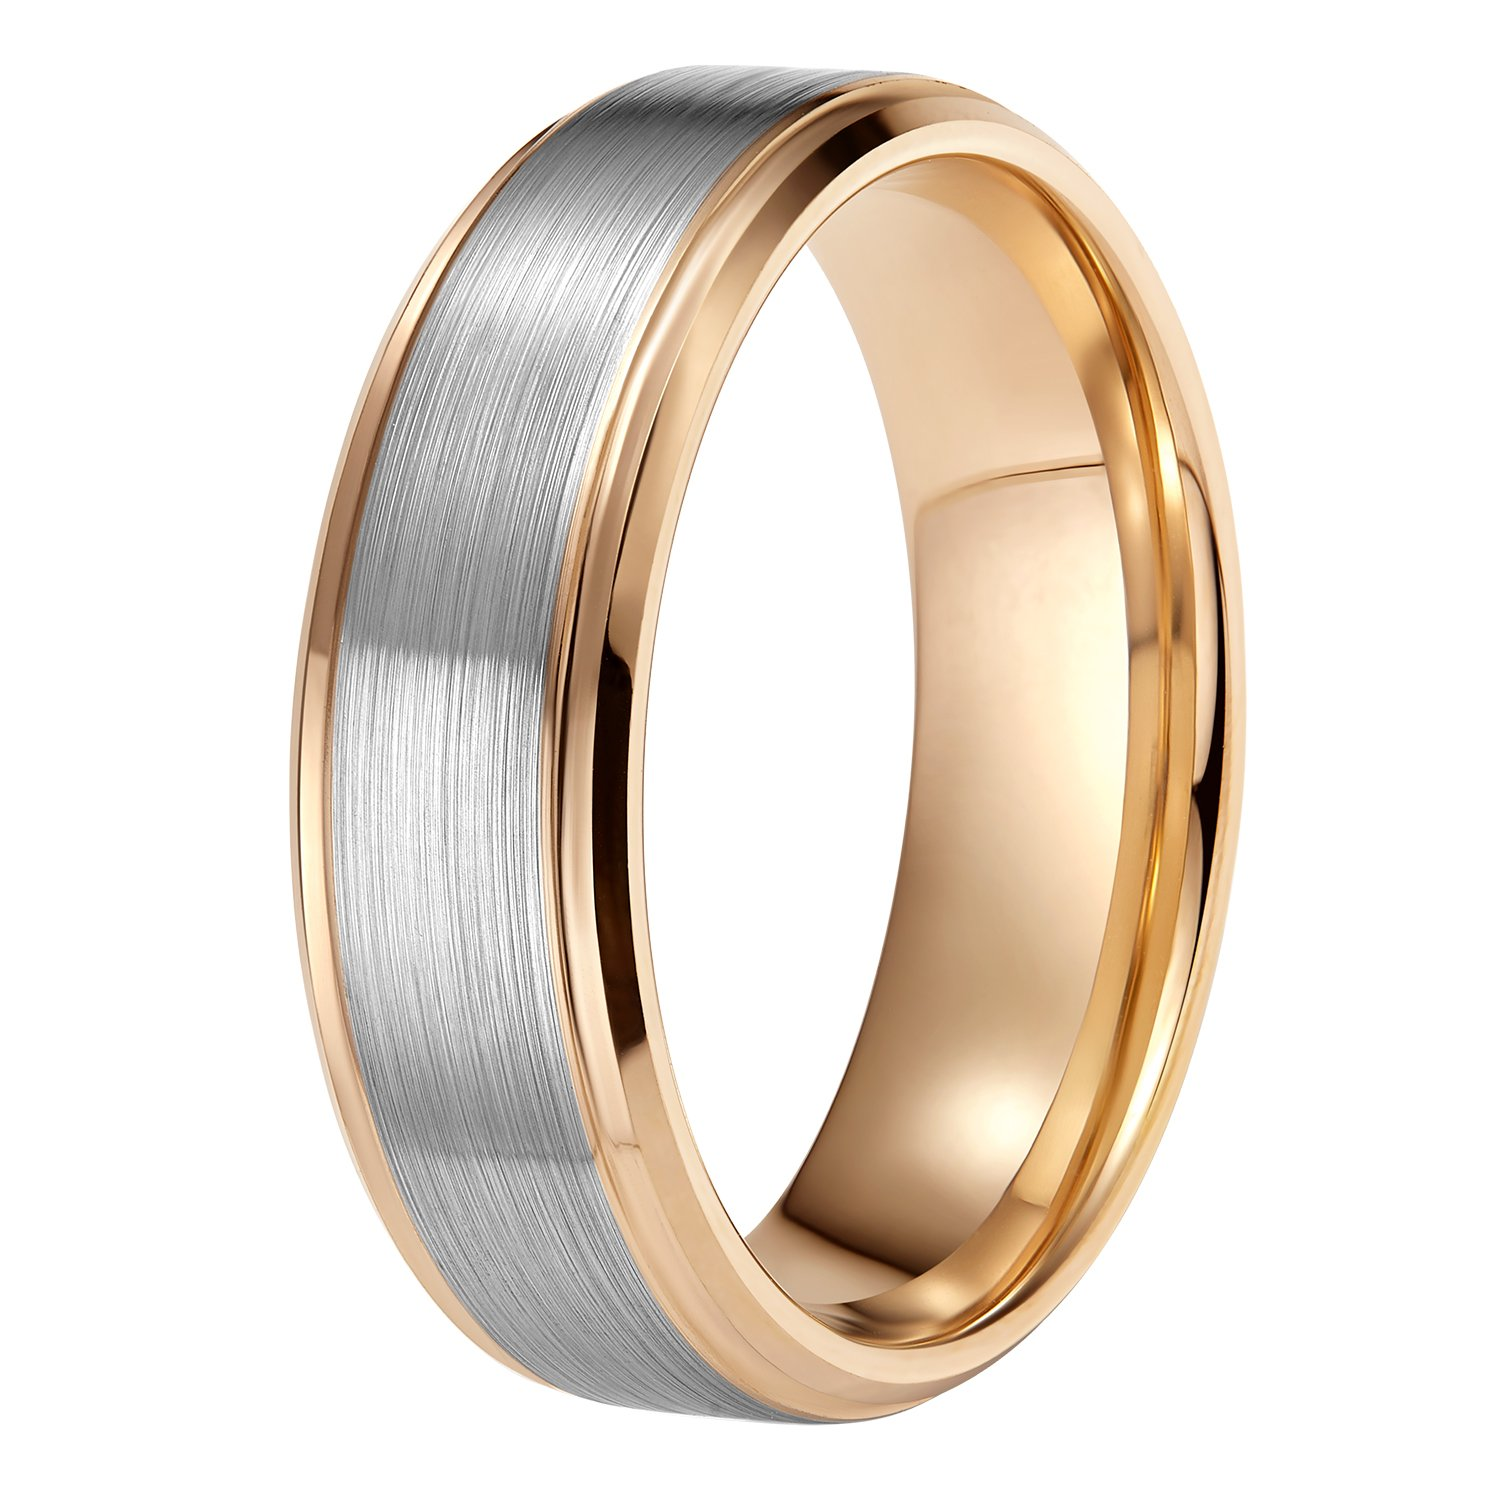 Shuremaster Mens Rose Gold Wedding Band 8mm Brushed Comfort Fit Tungsten Carbide Ring Size 10